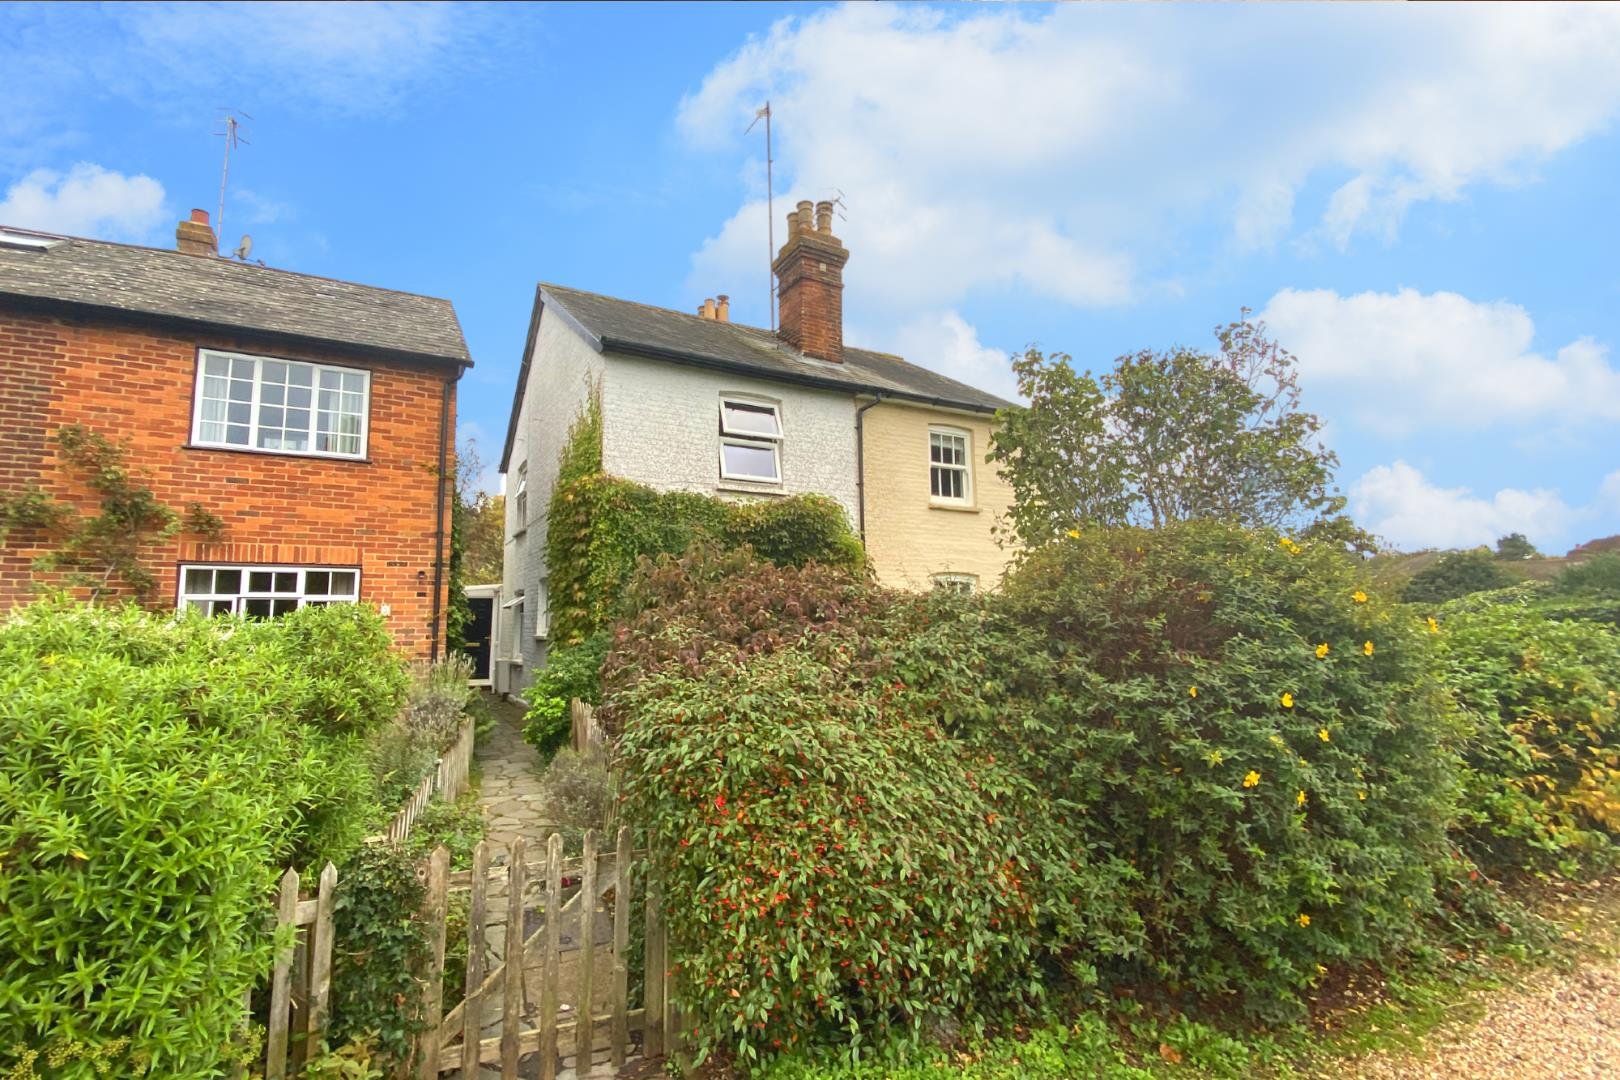 2 bed house for sale in Wonersh  - Property Image 11